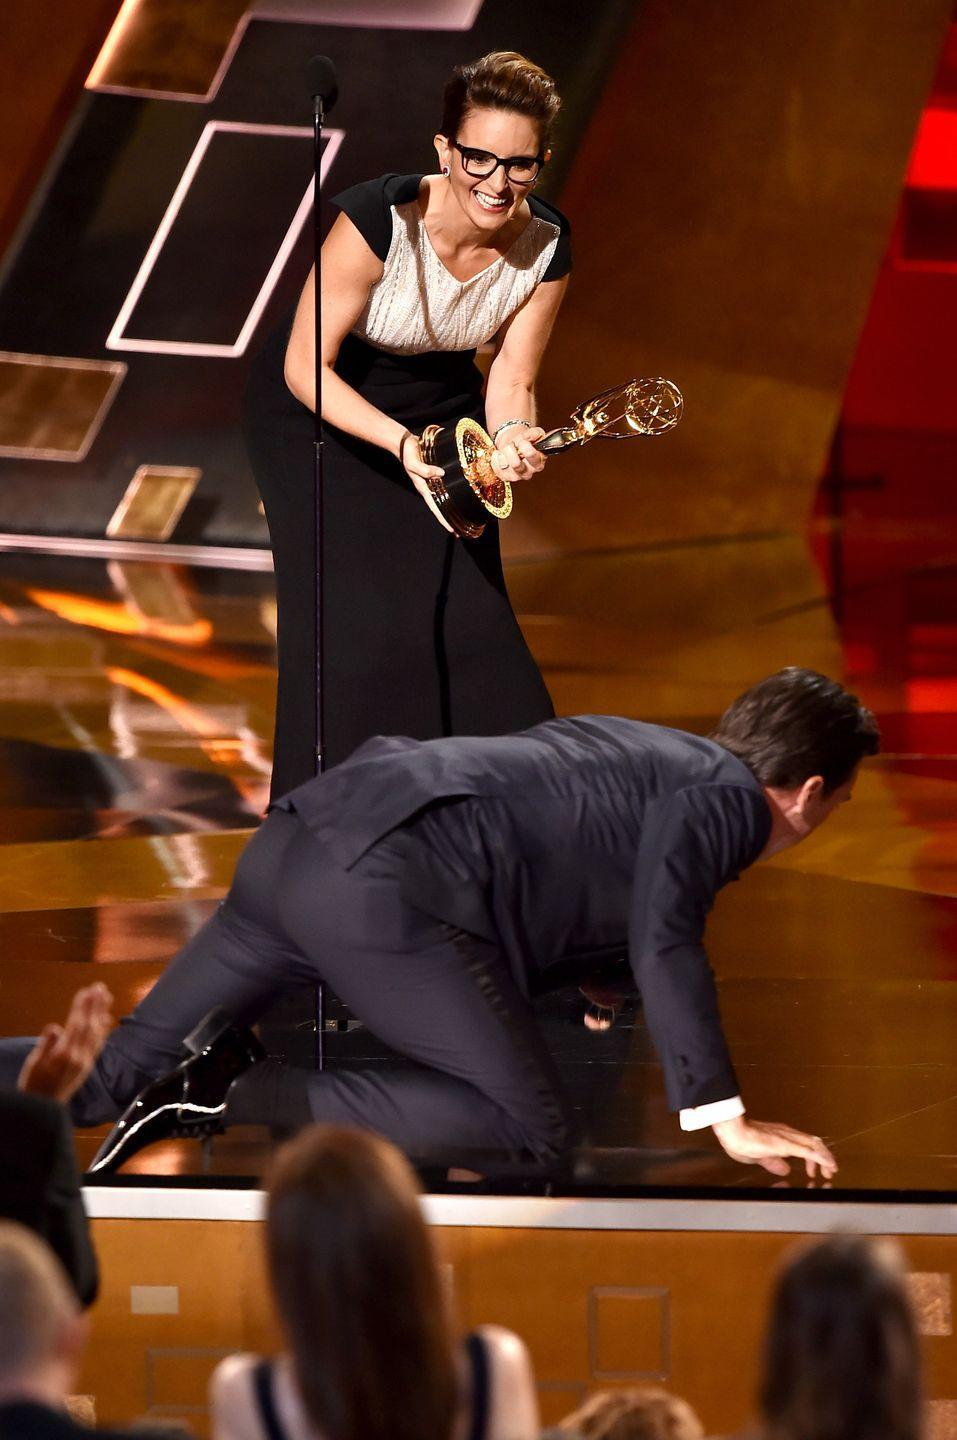 <p>In 2015, Jon Hamm finally won an Emmy for Outstanding Lead Actor in a Drama for his work as Don Draper after being nominated 16 times. As a bit, Hamm crawled up the steps and onto the stage. <br></p>